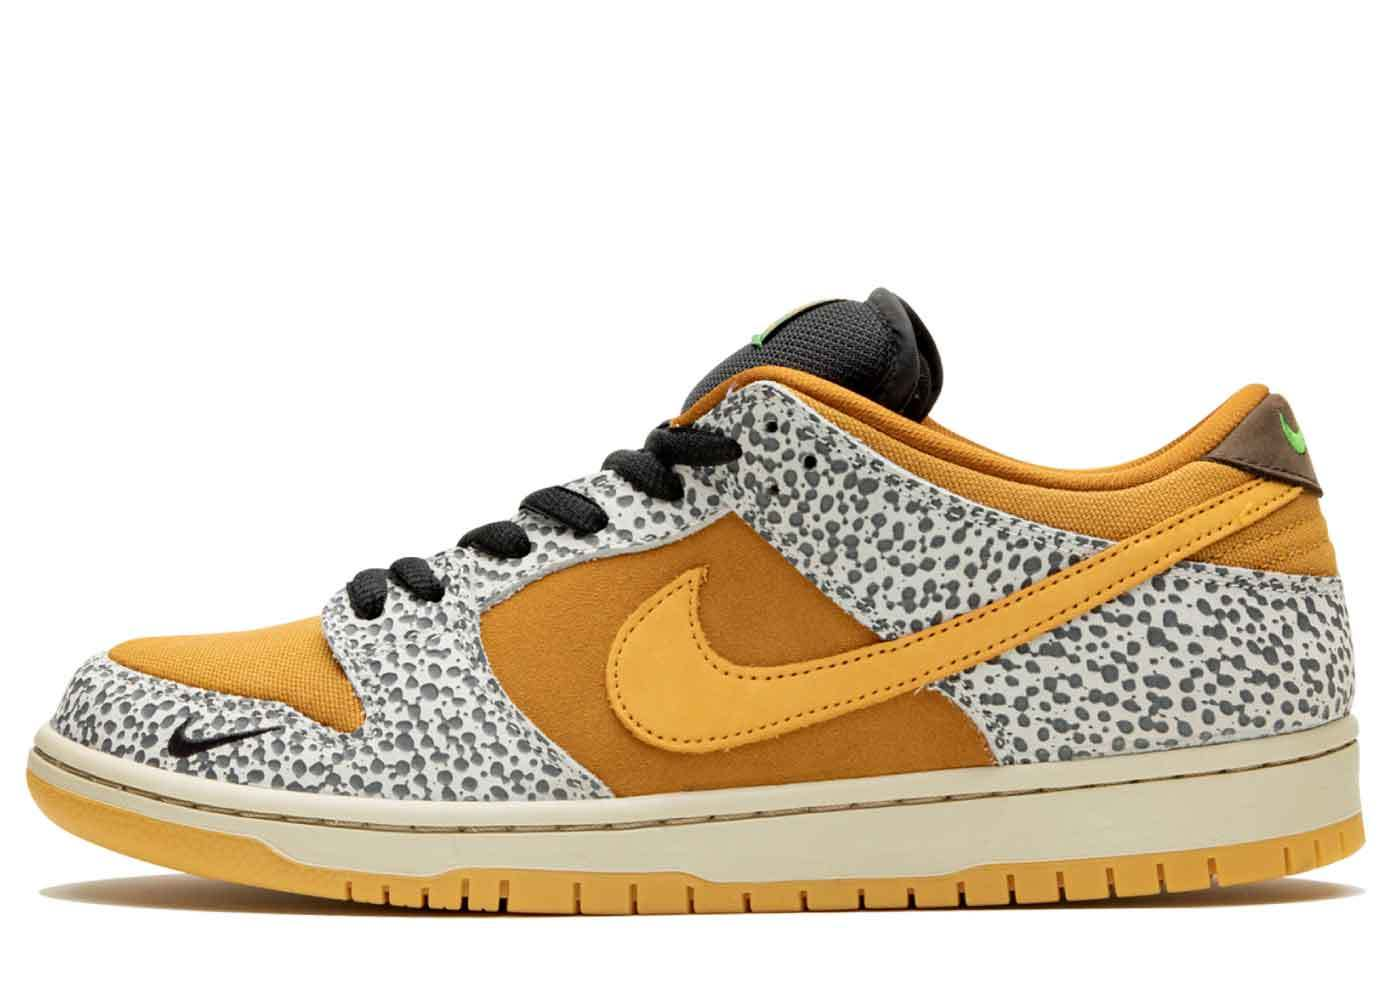 Nike SB Dunk Low Safariの写真